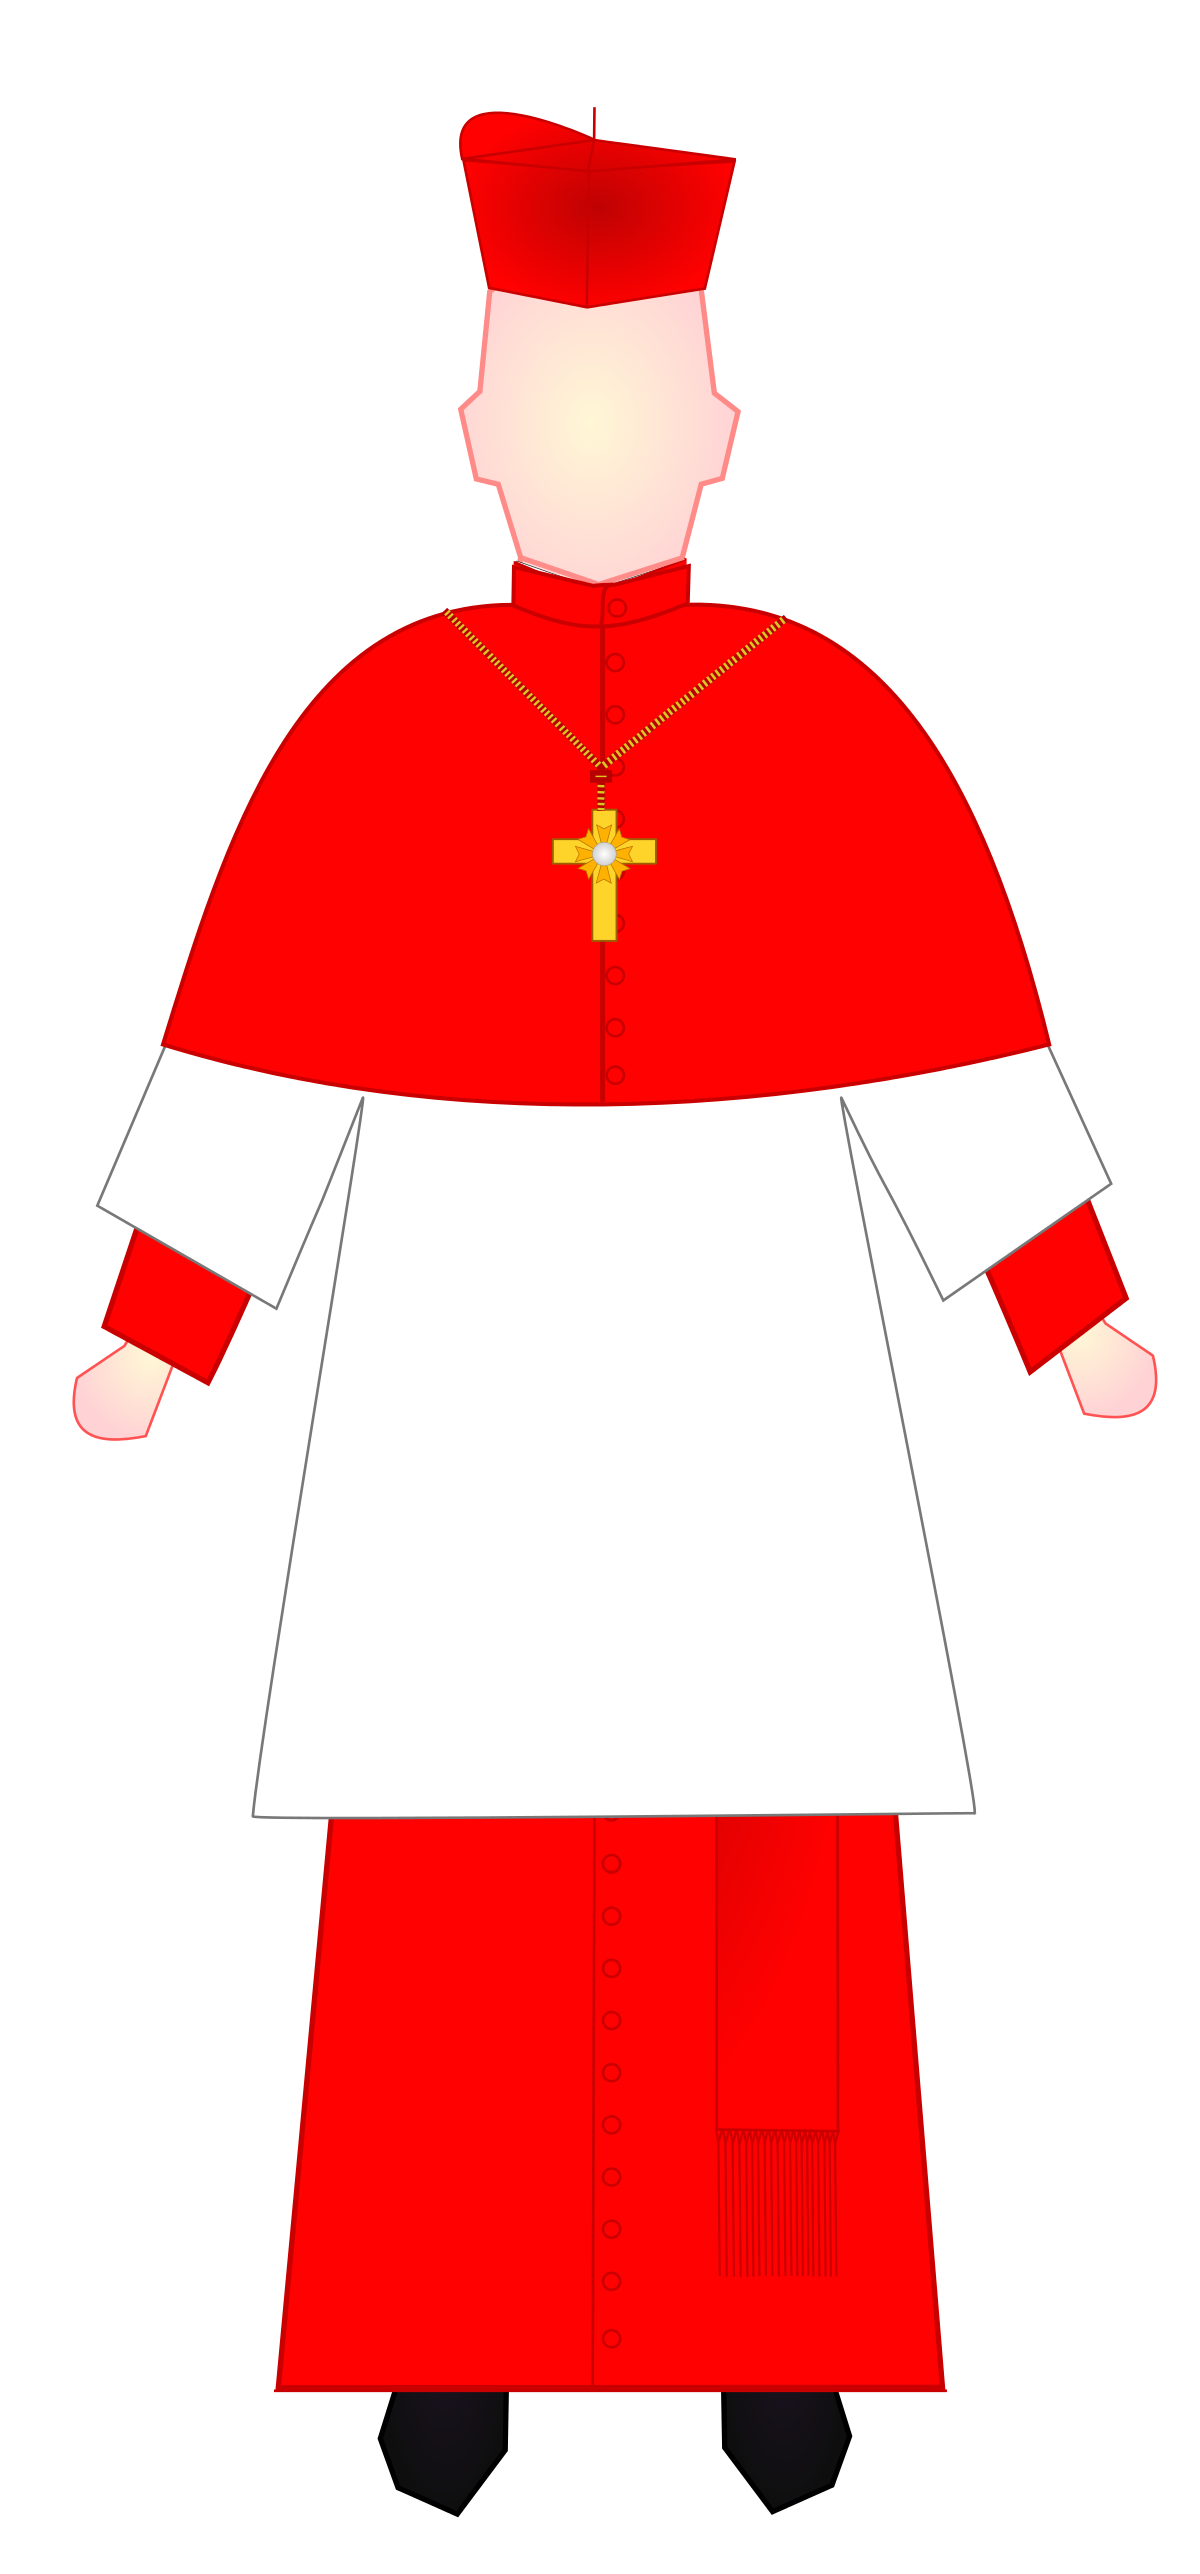 Cardinal clipart church. List of living cardinals